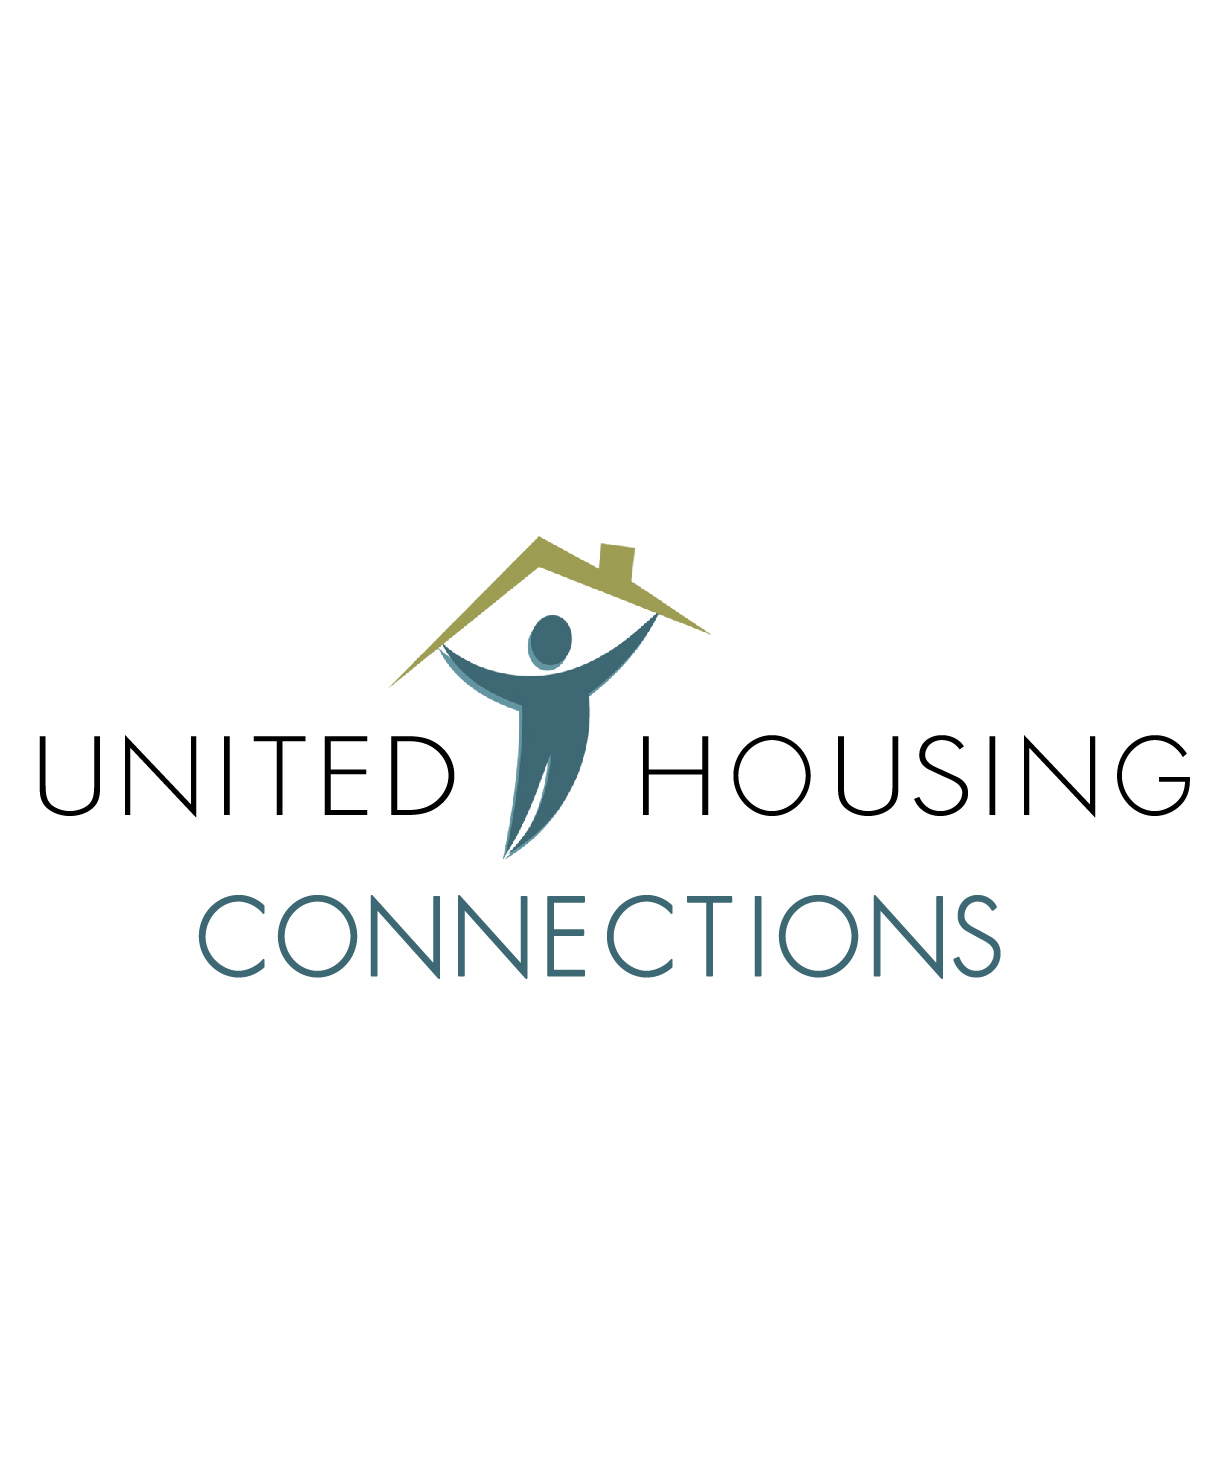 United Housing Connections.jpg